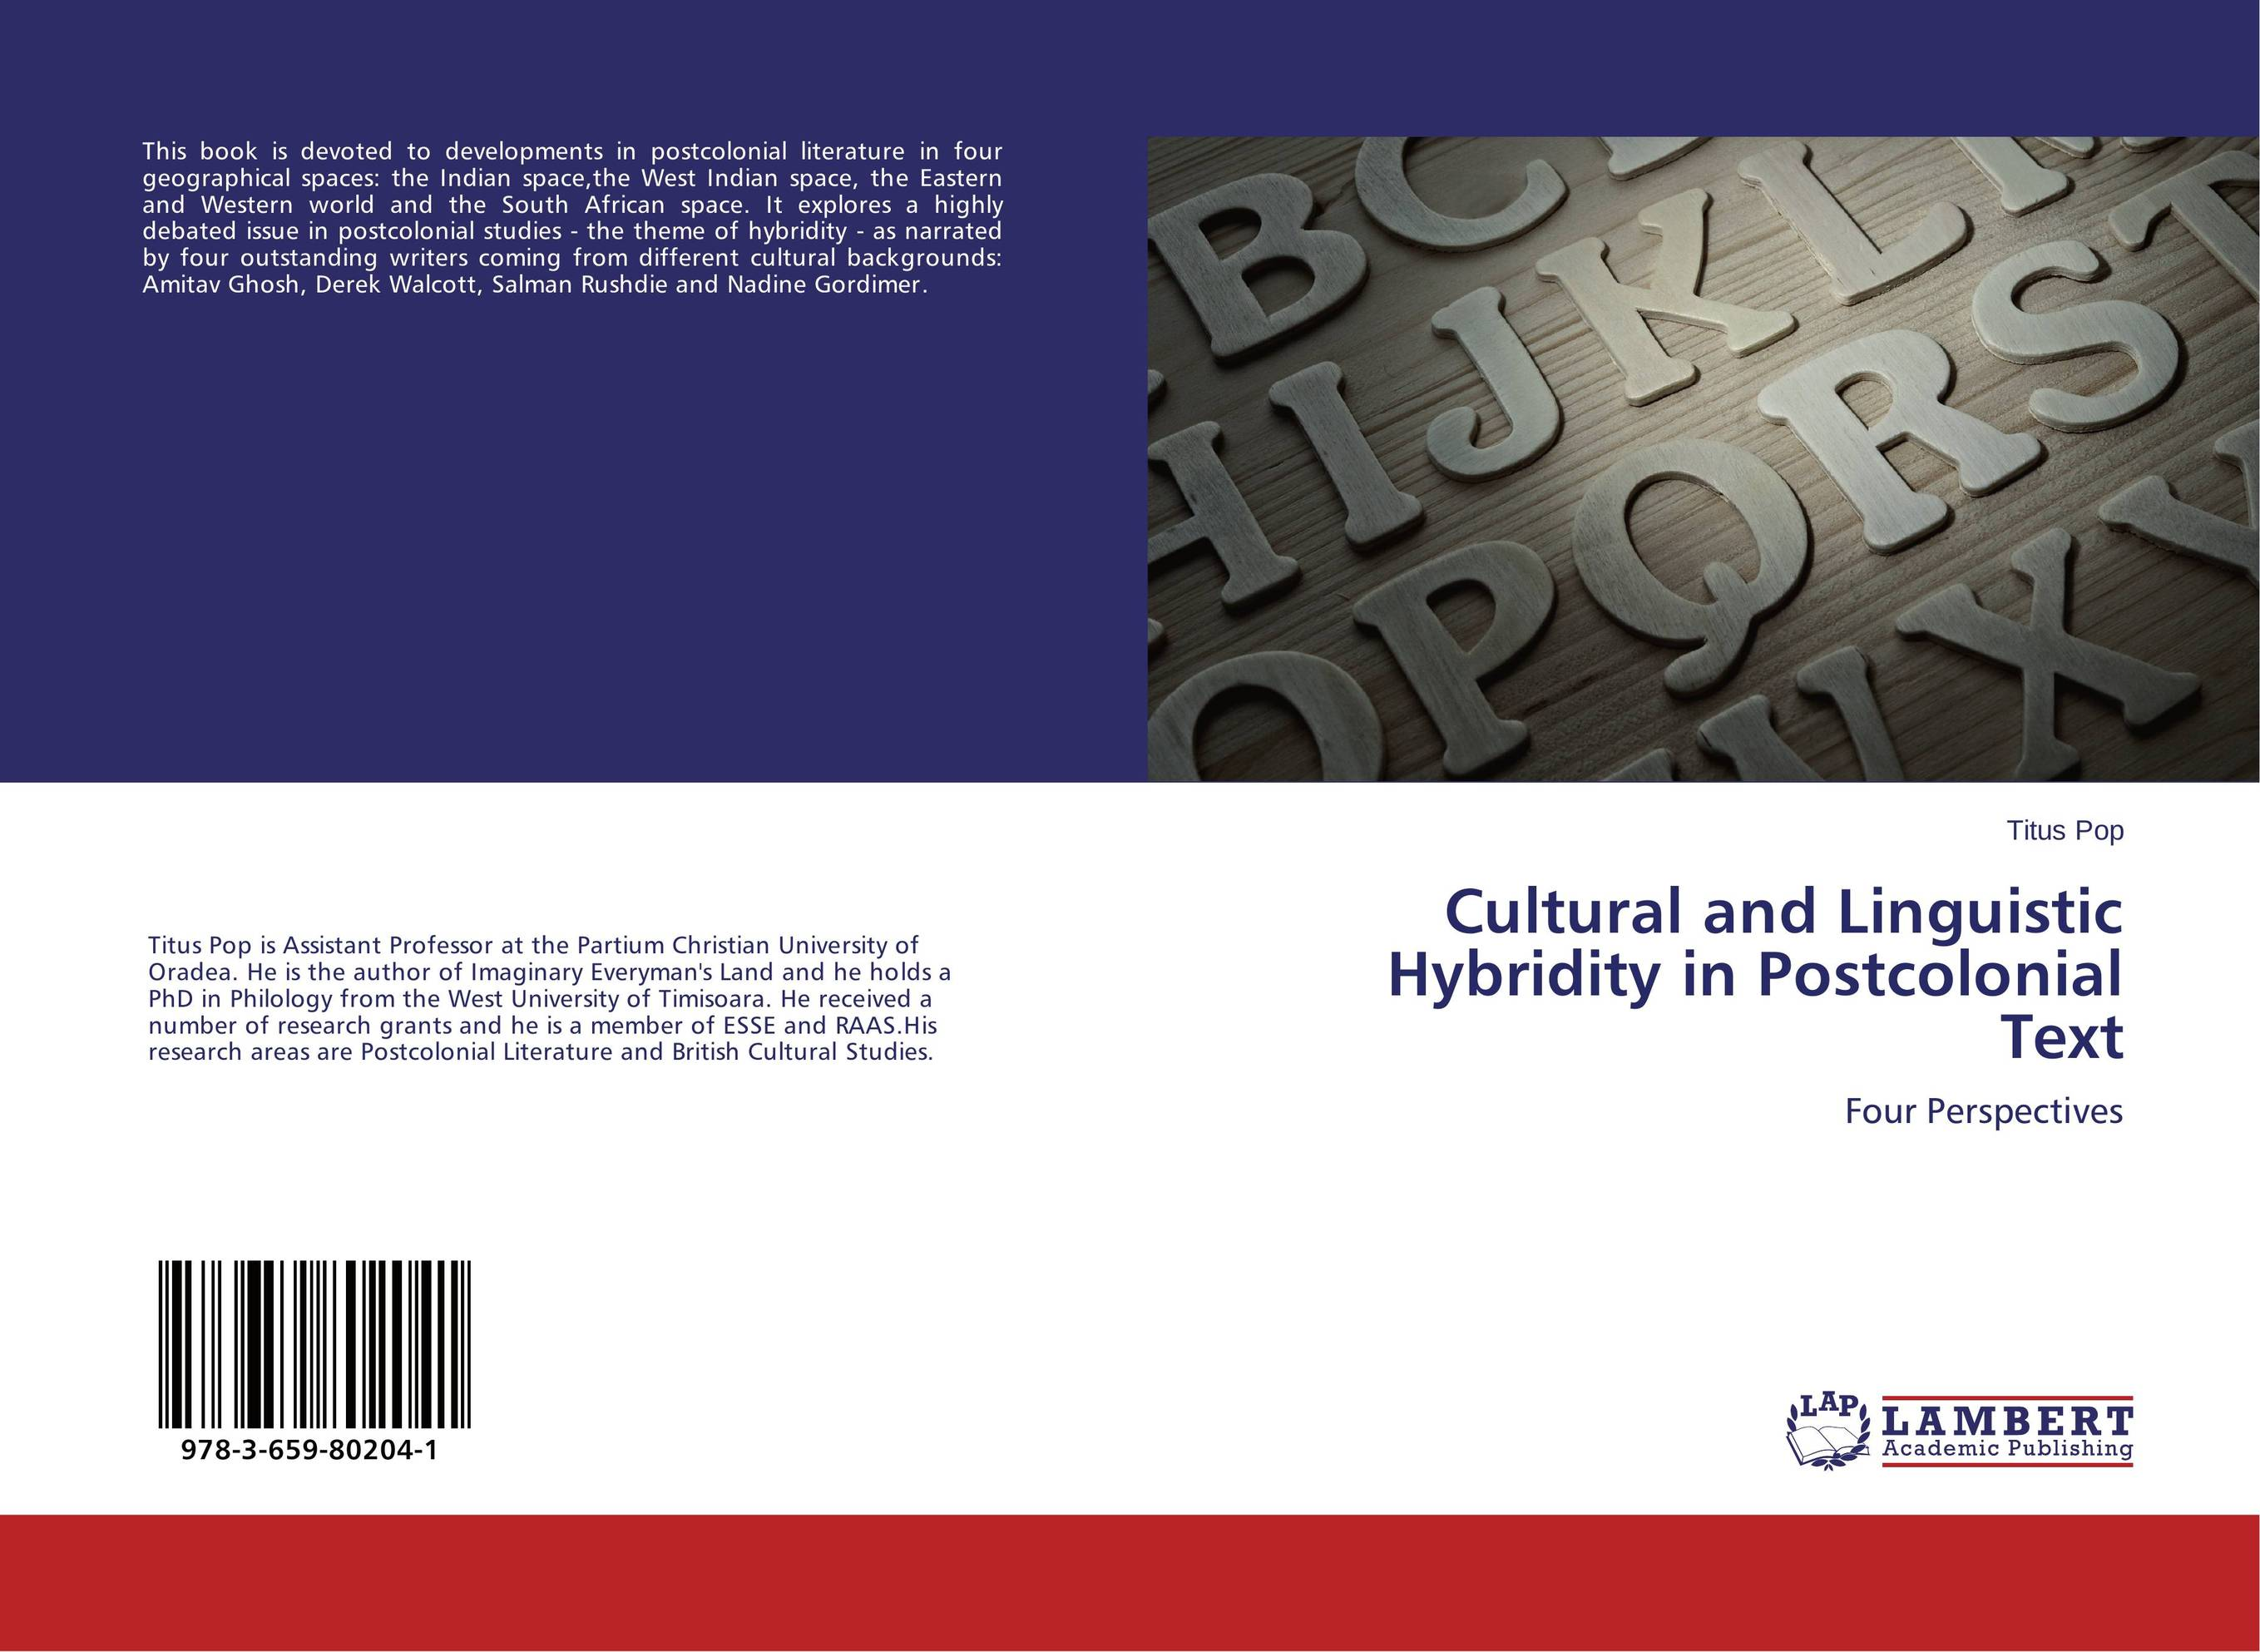 Cultural and Linguistic Hybridity in Postcolonial Text linguistic variation in a multilingual setting